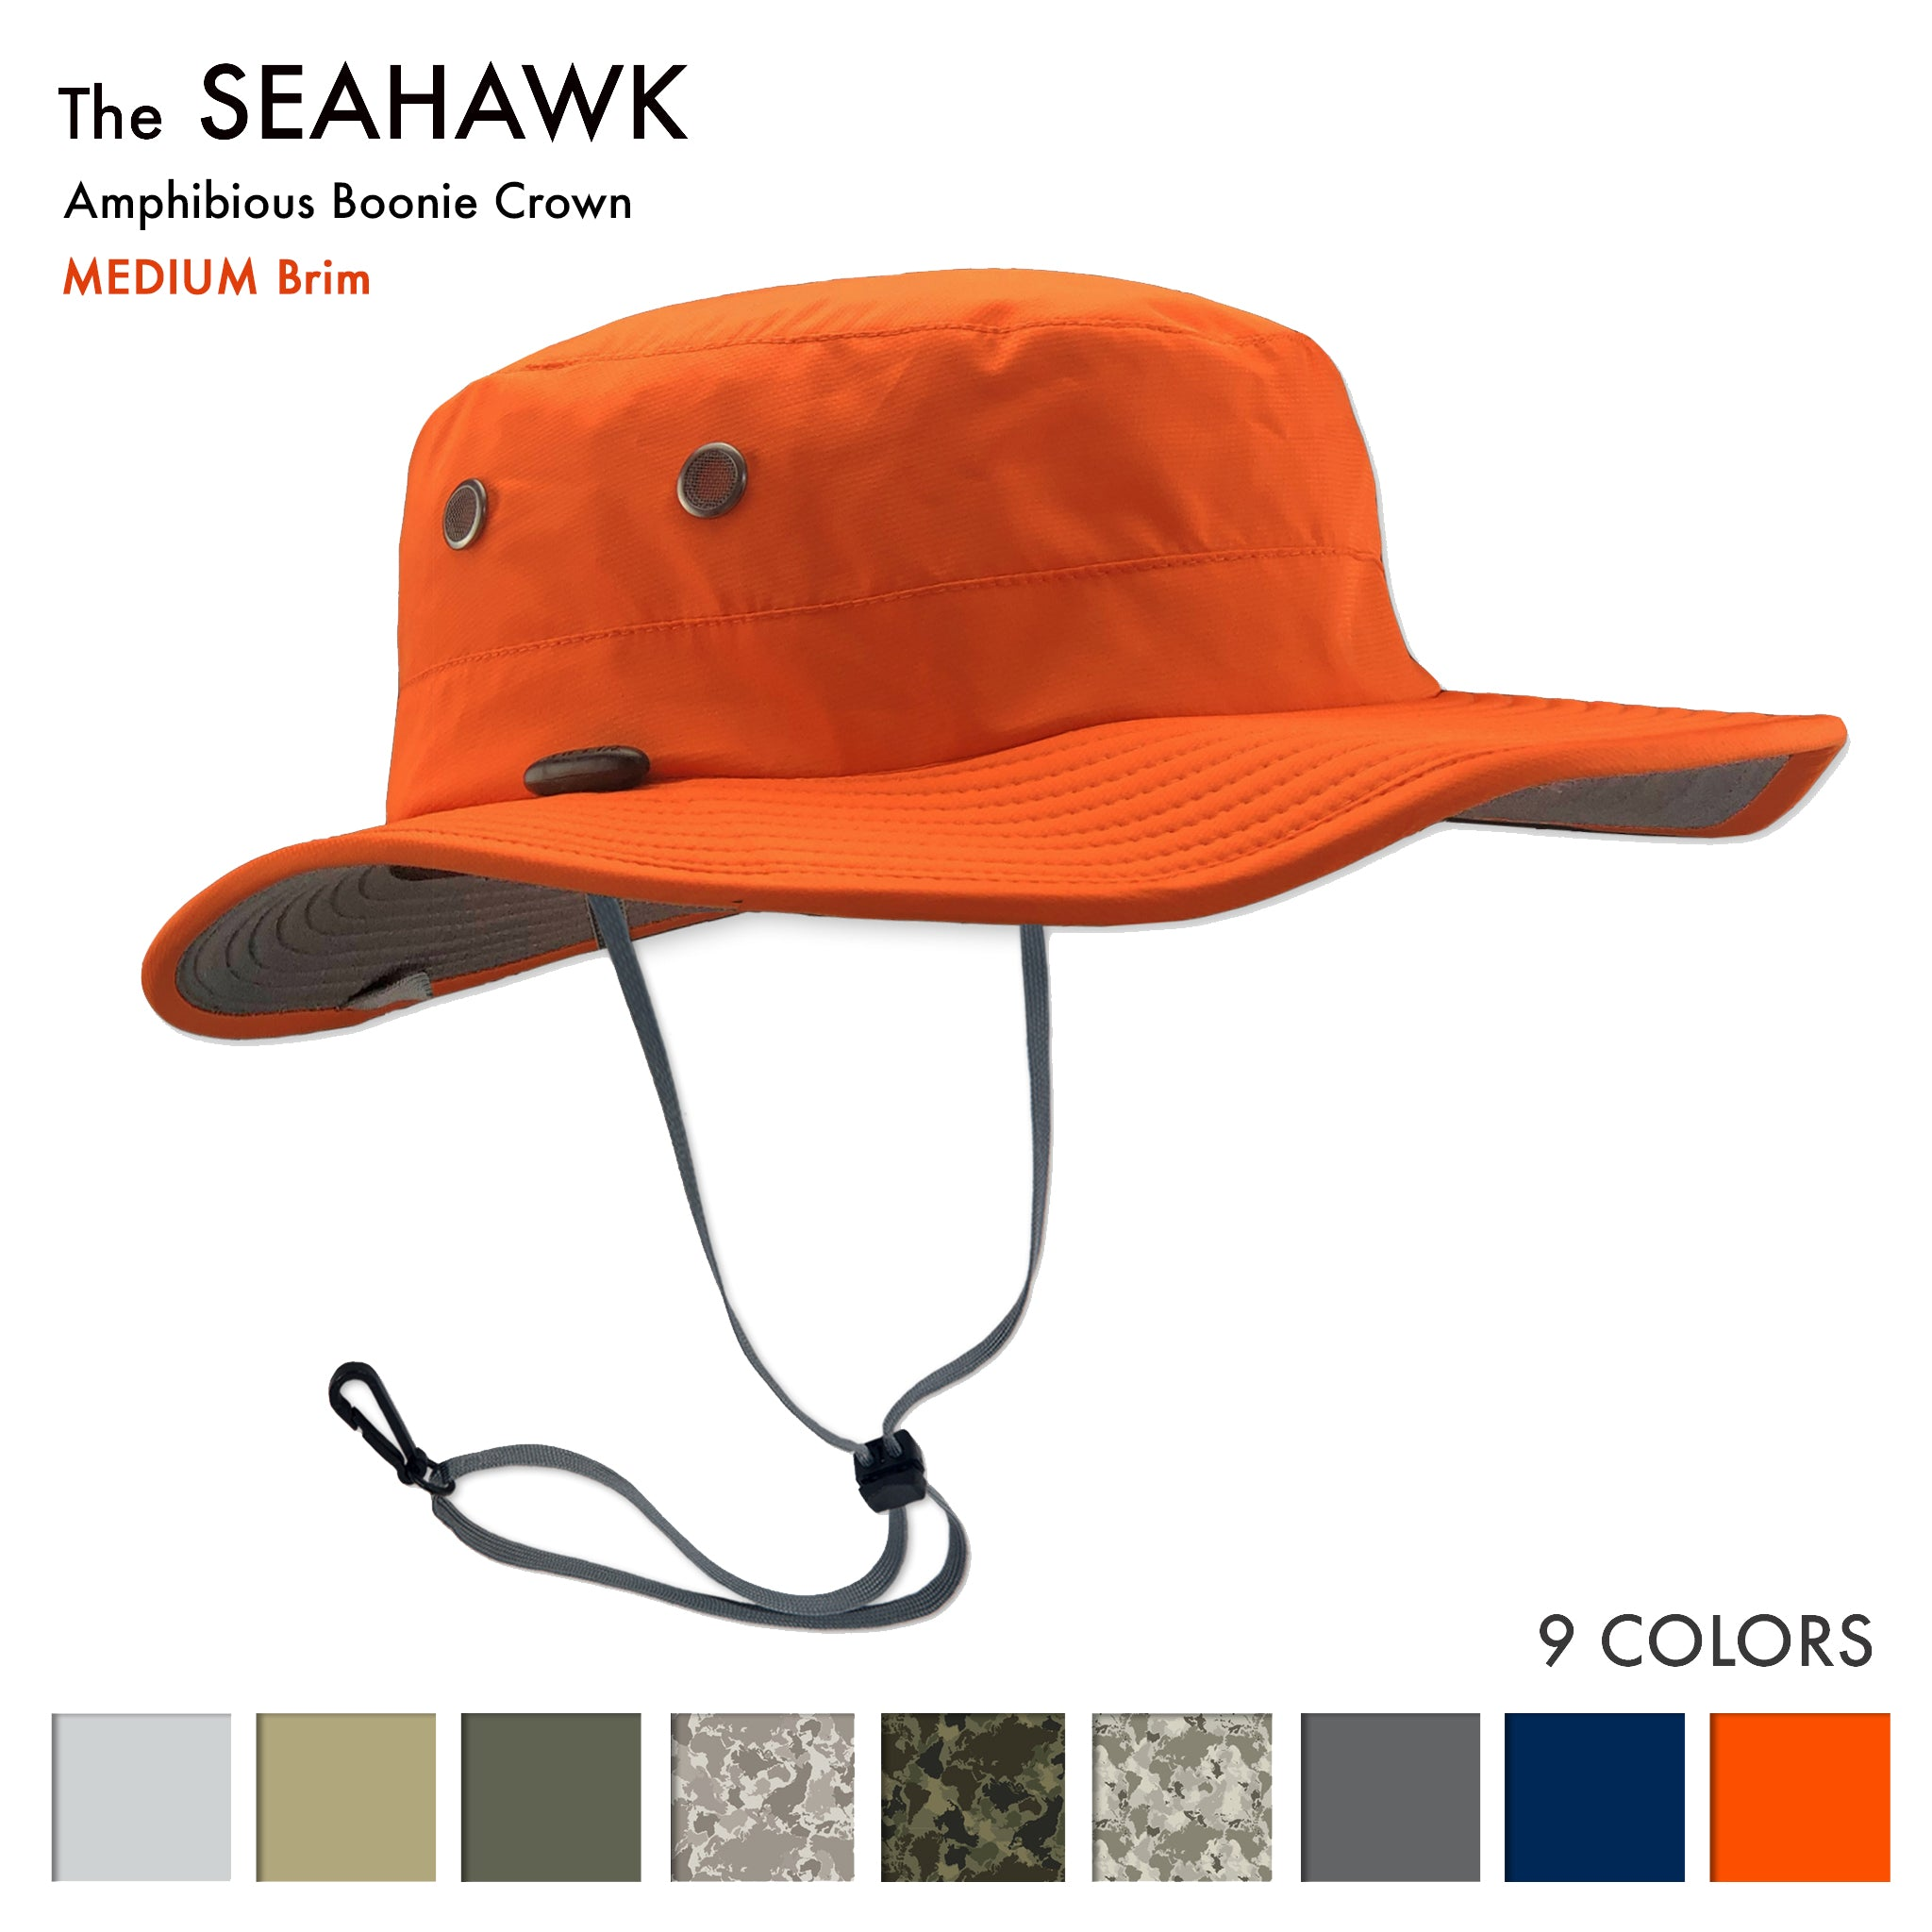 The Seahawk Sun Hats are the best sun hats for river rafting, PWC, Fishing, Wake Boarding, Sailing, Water skiing and Boating - Great sun hat for Stand up paddle boarding - sup - paddle surfing, wakeboarding, windsurfing, hiking, rowing and golfing - and a good sun hat for surfing, shooting and fly fishing. This is the best fathers day gift idea